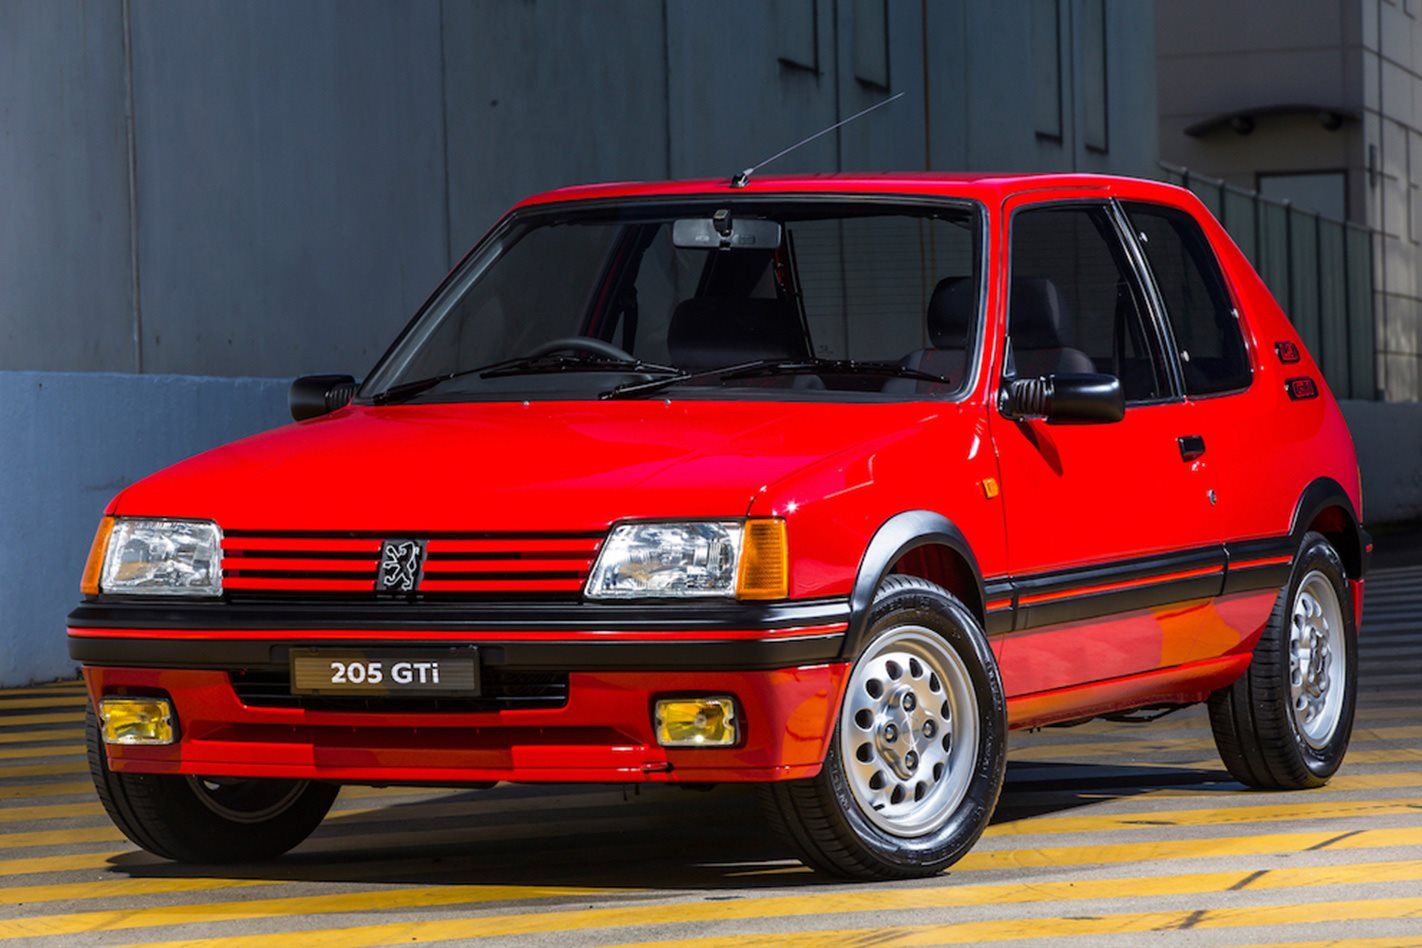 peugeot 205 gti sells for 53 000 motor. Black Bedroom Furniture Sets. Home Design Ideas